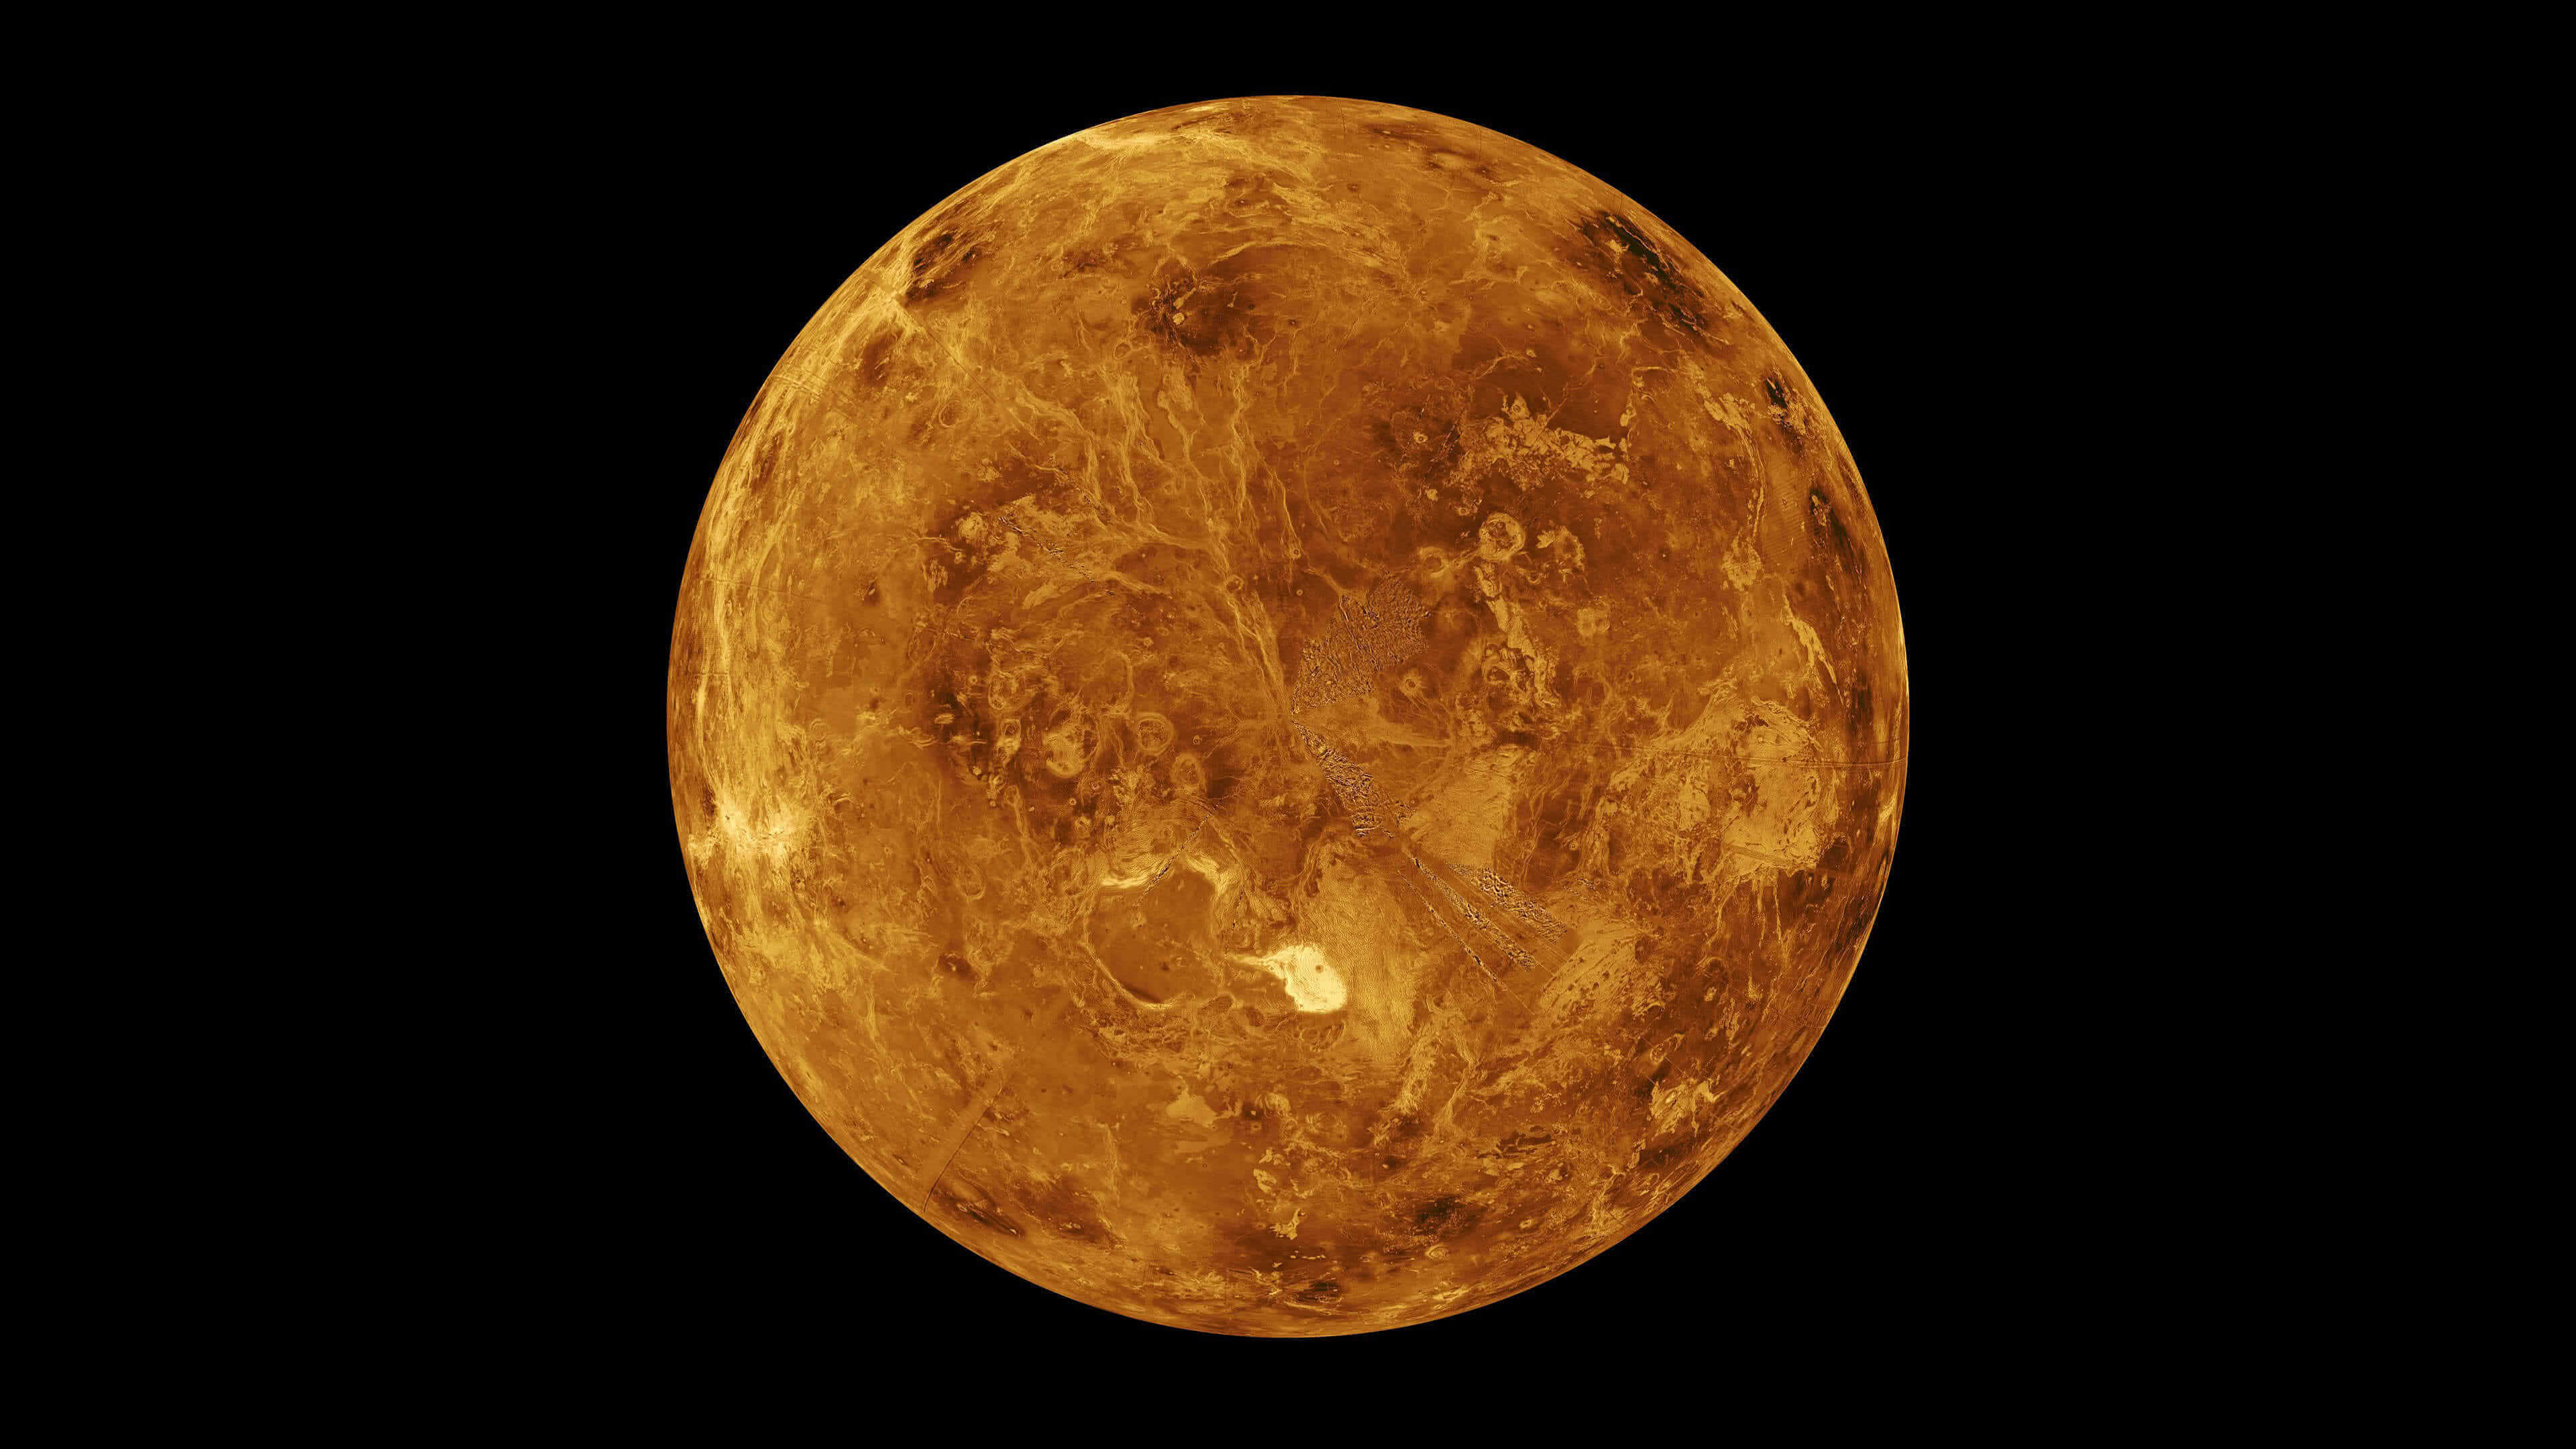 planet venus uhd 4k wallpaper